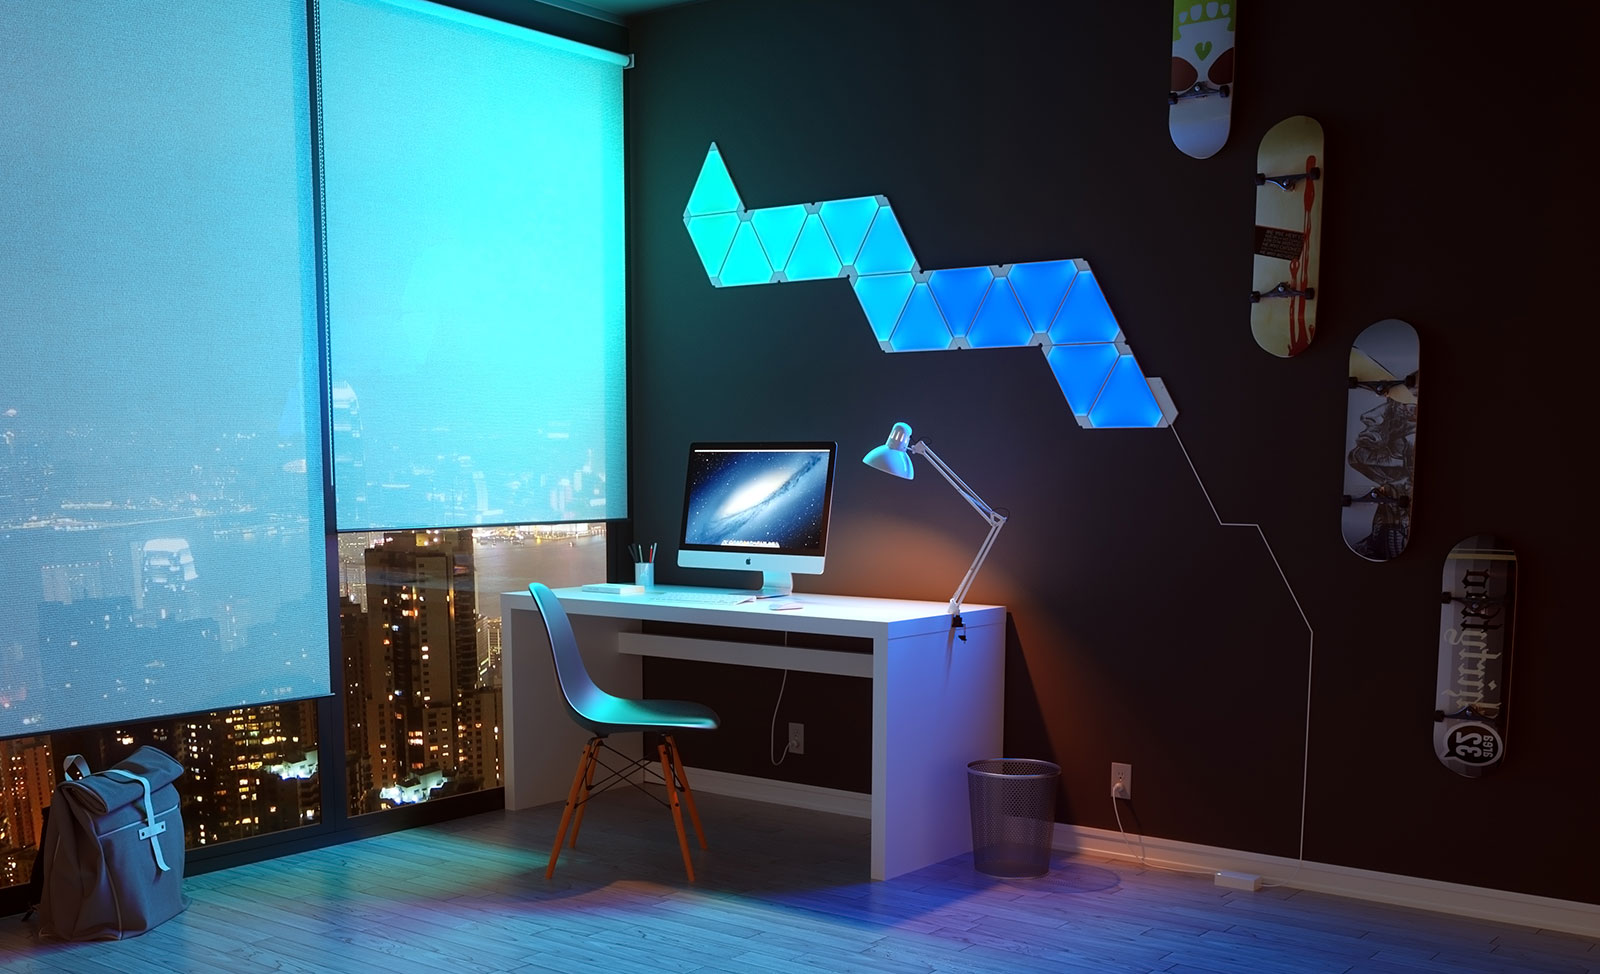 Jb Hi Fi Lighting Nanoleaf Lights Up Rooms In Ways No Smartlight Will Pickr